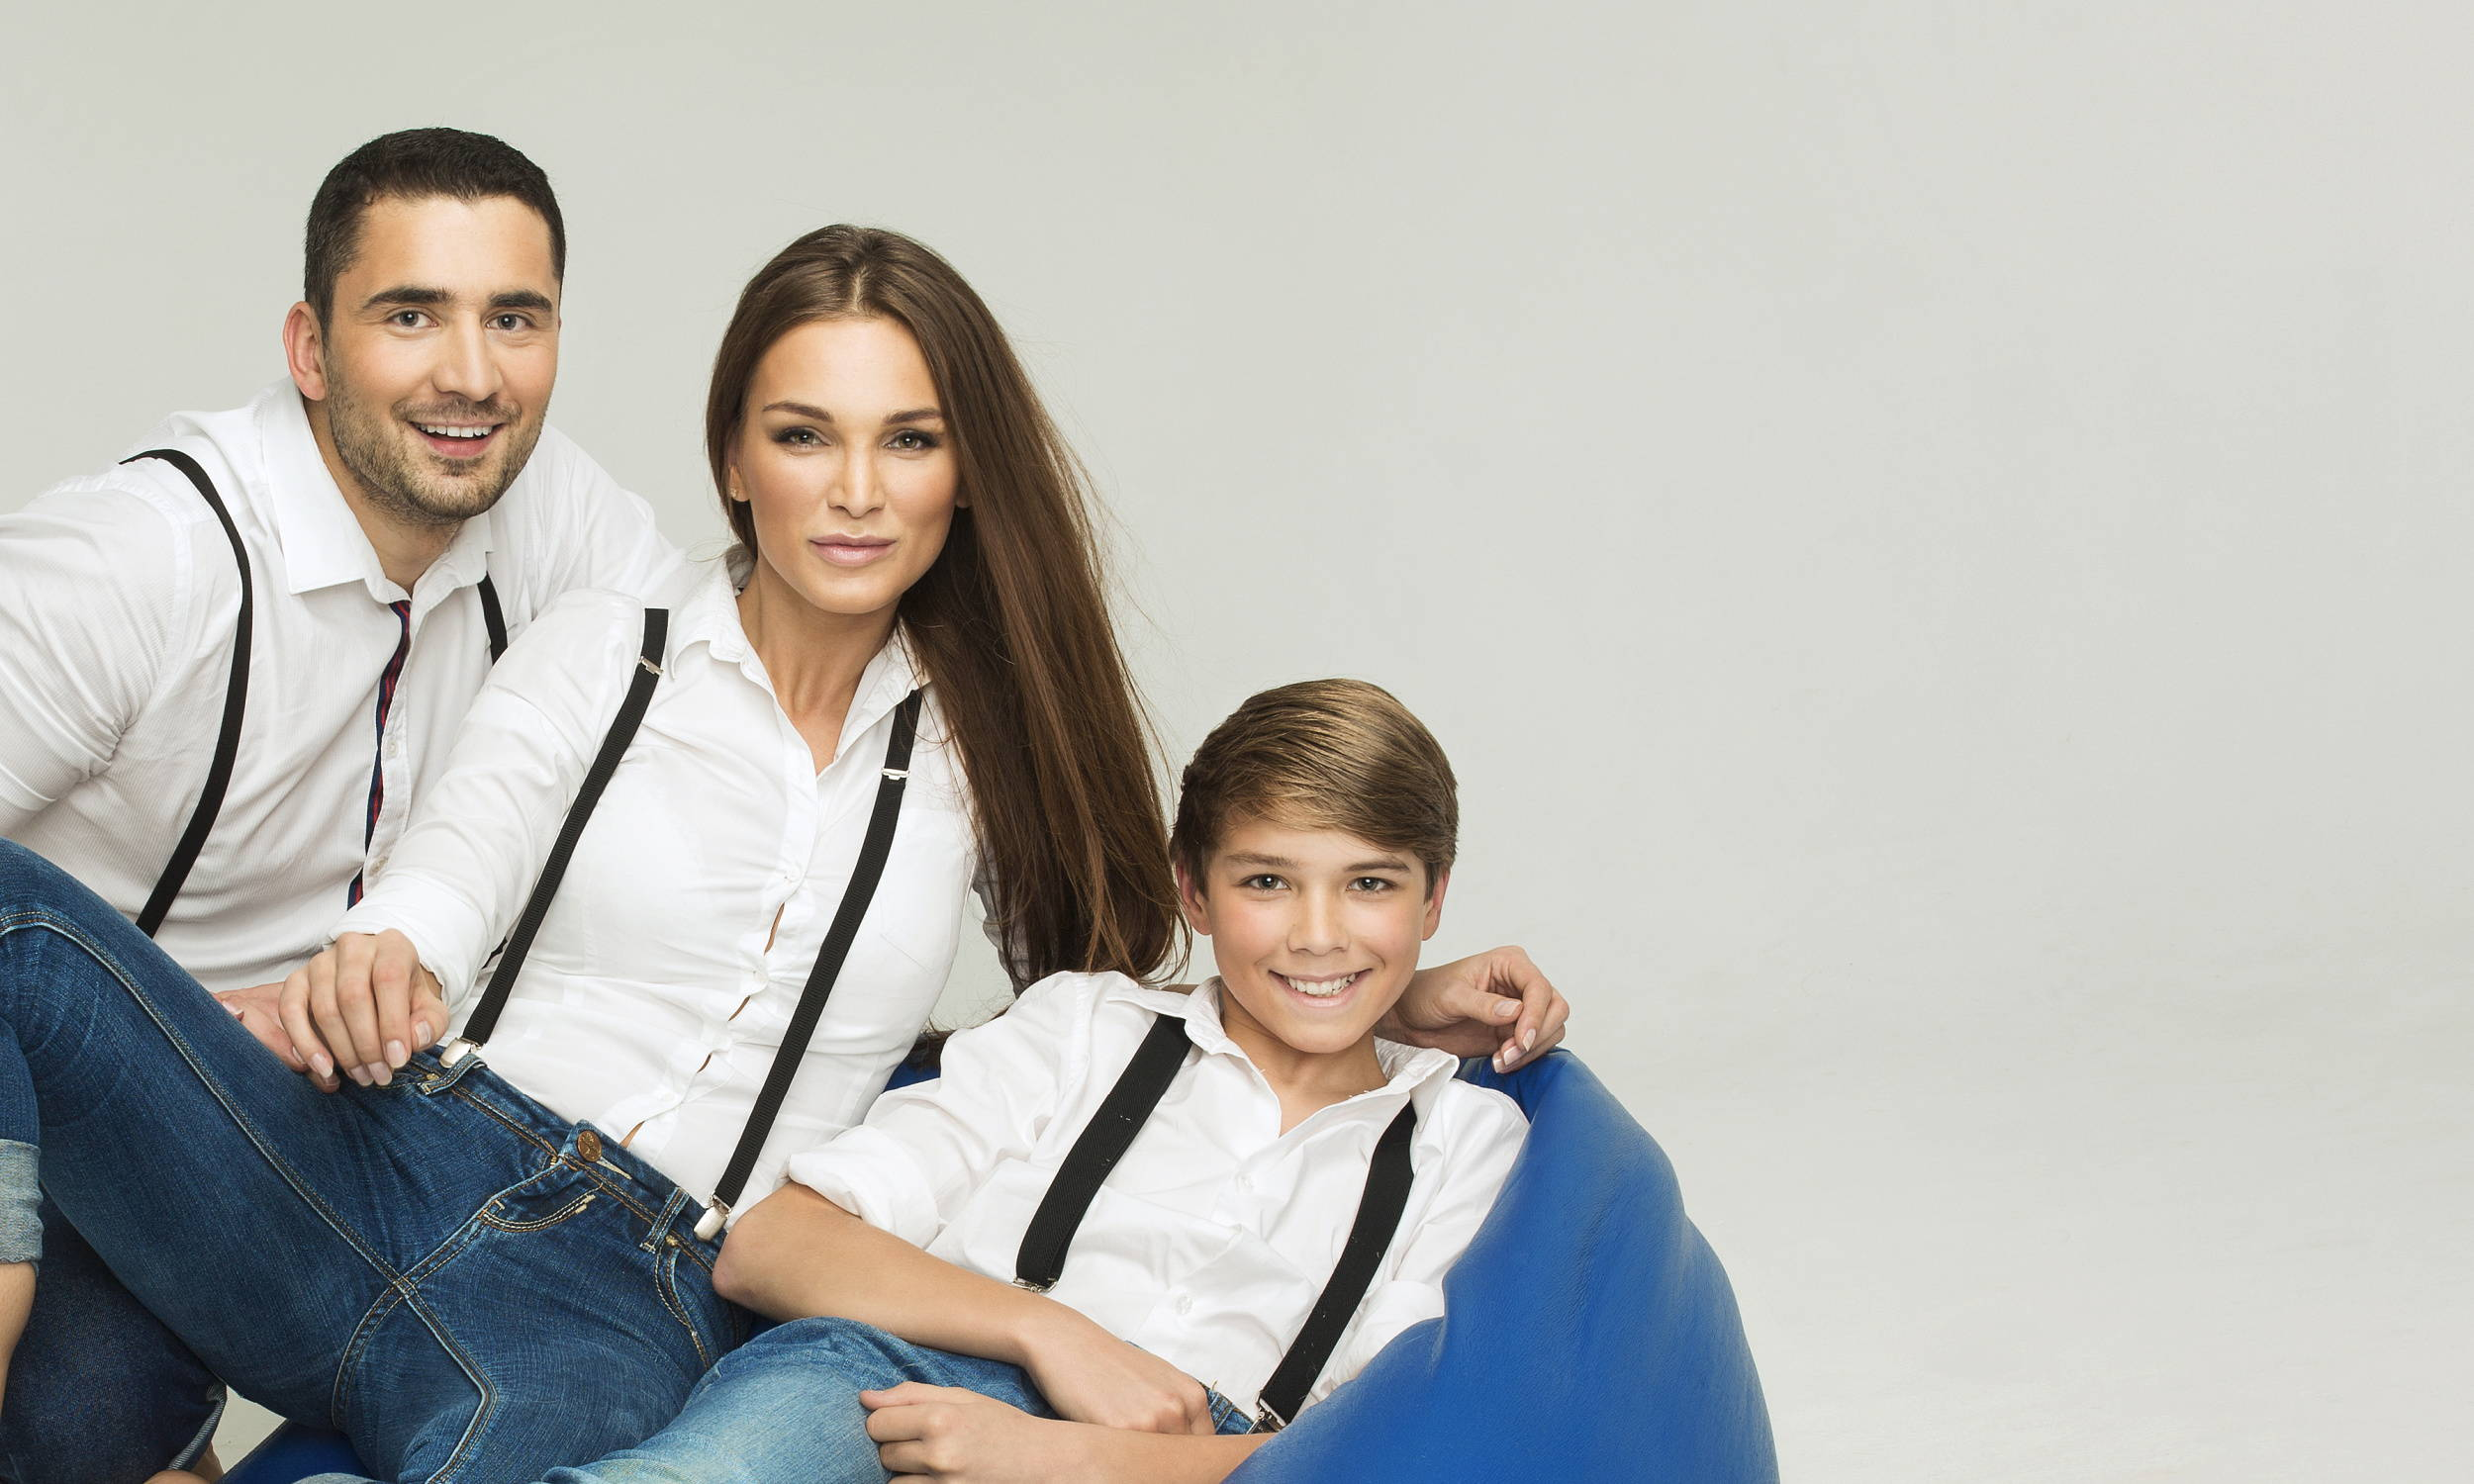 Family Wearing Suspenders